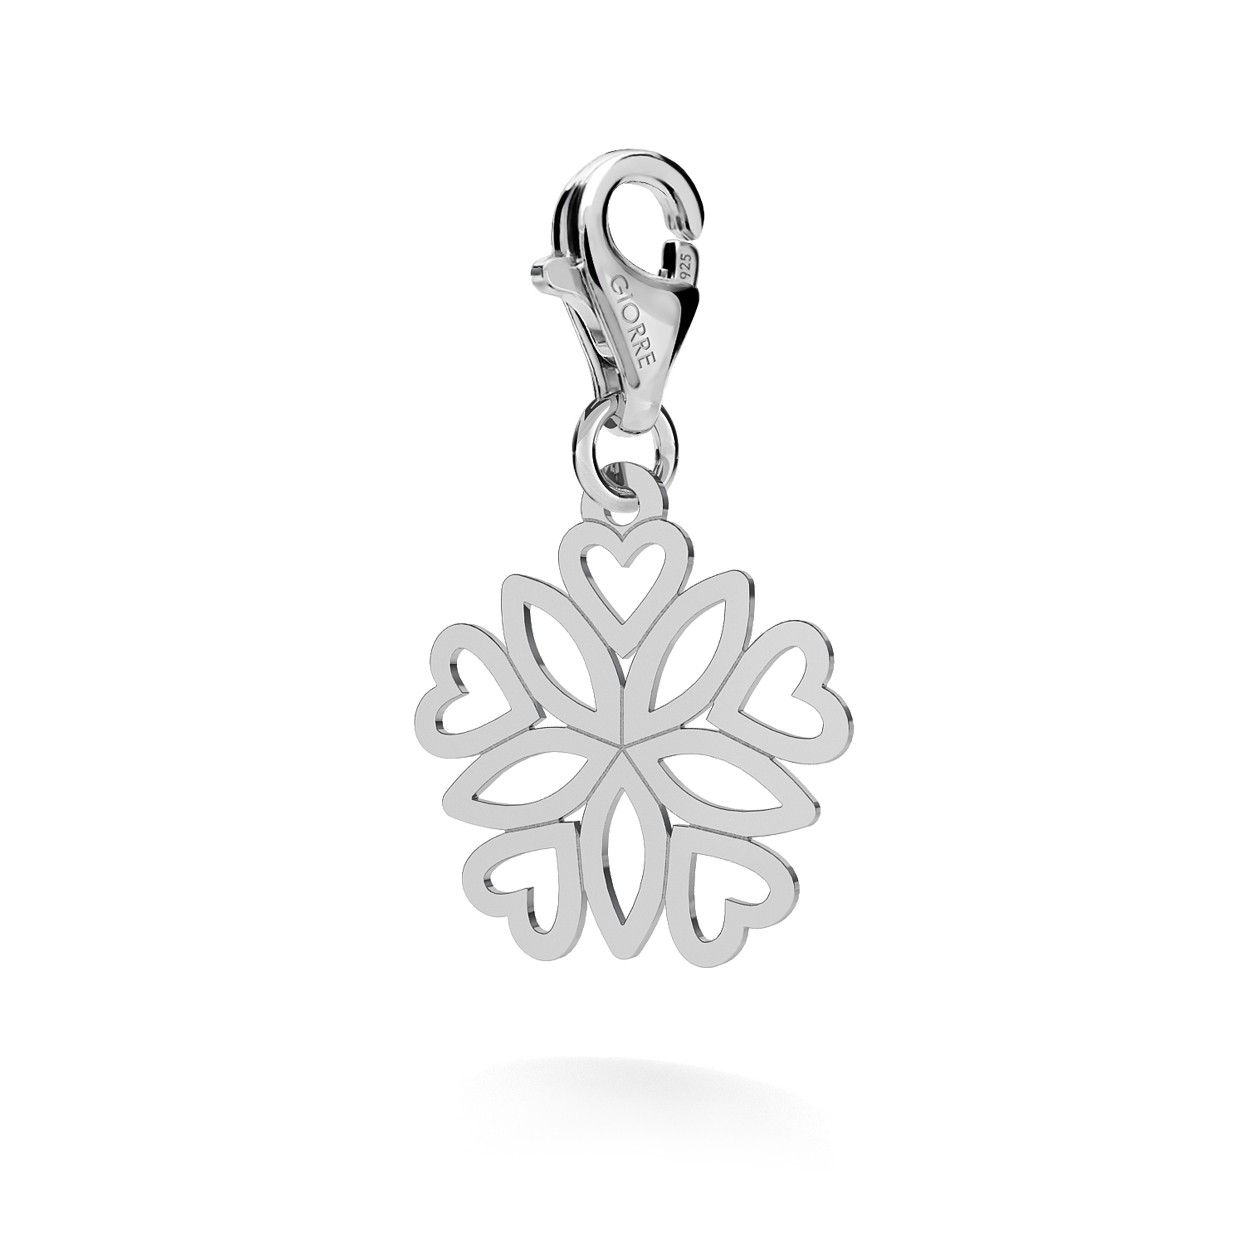 CHARM 61, ROSETTE HEARTS, SILVER 925, RHODIUM OR GOLD PLATED